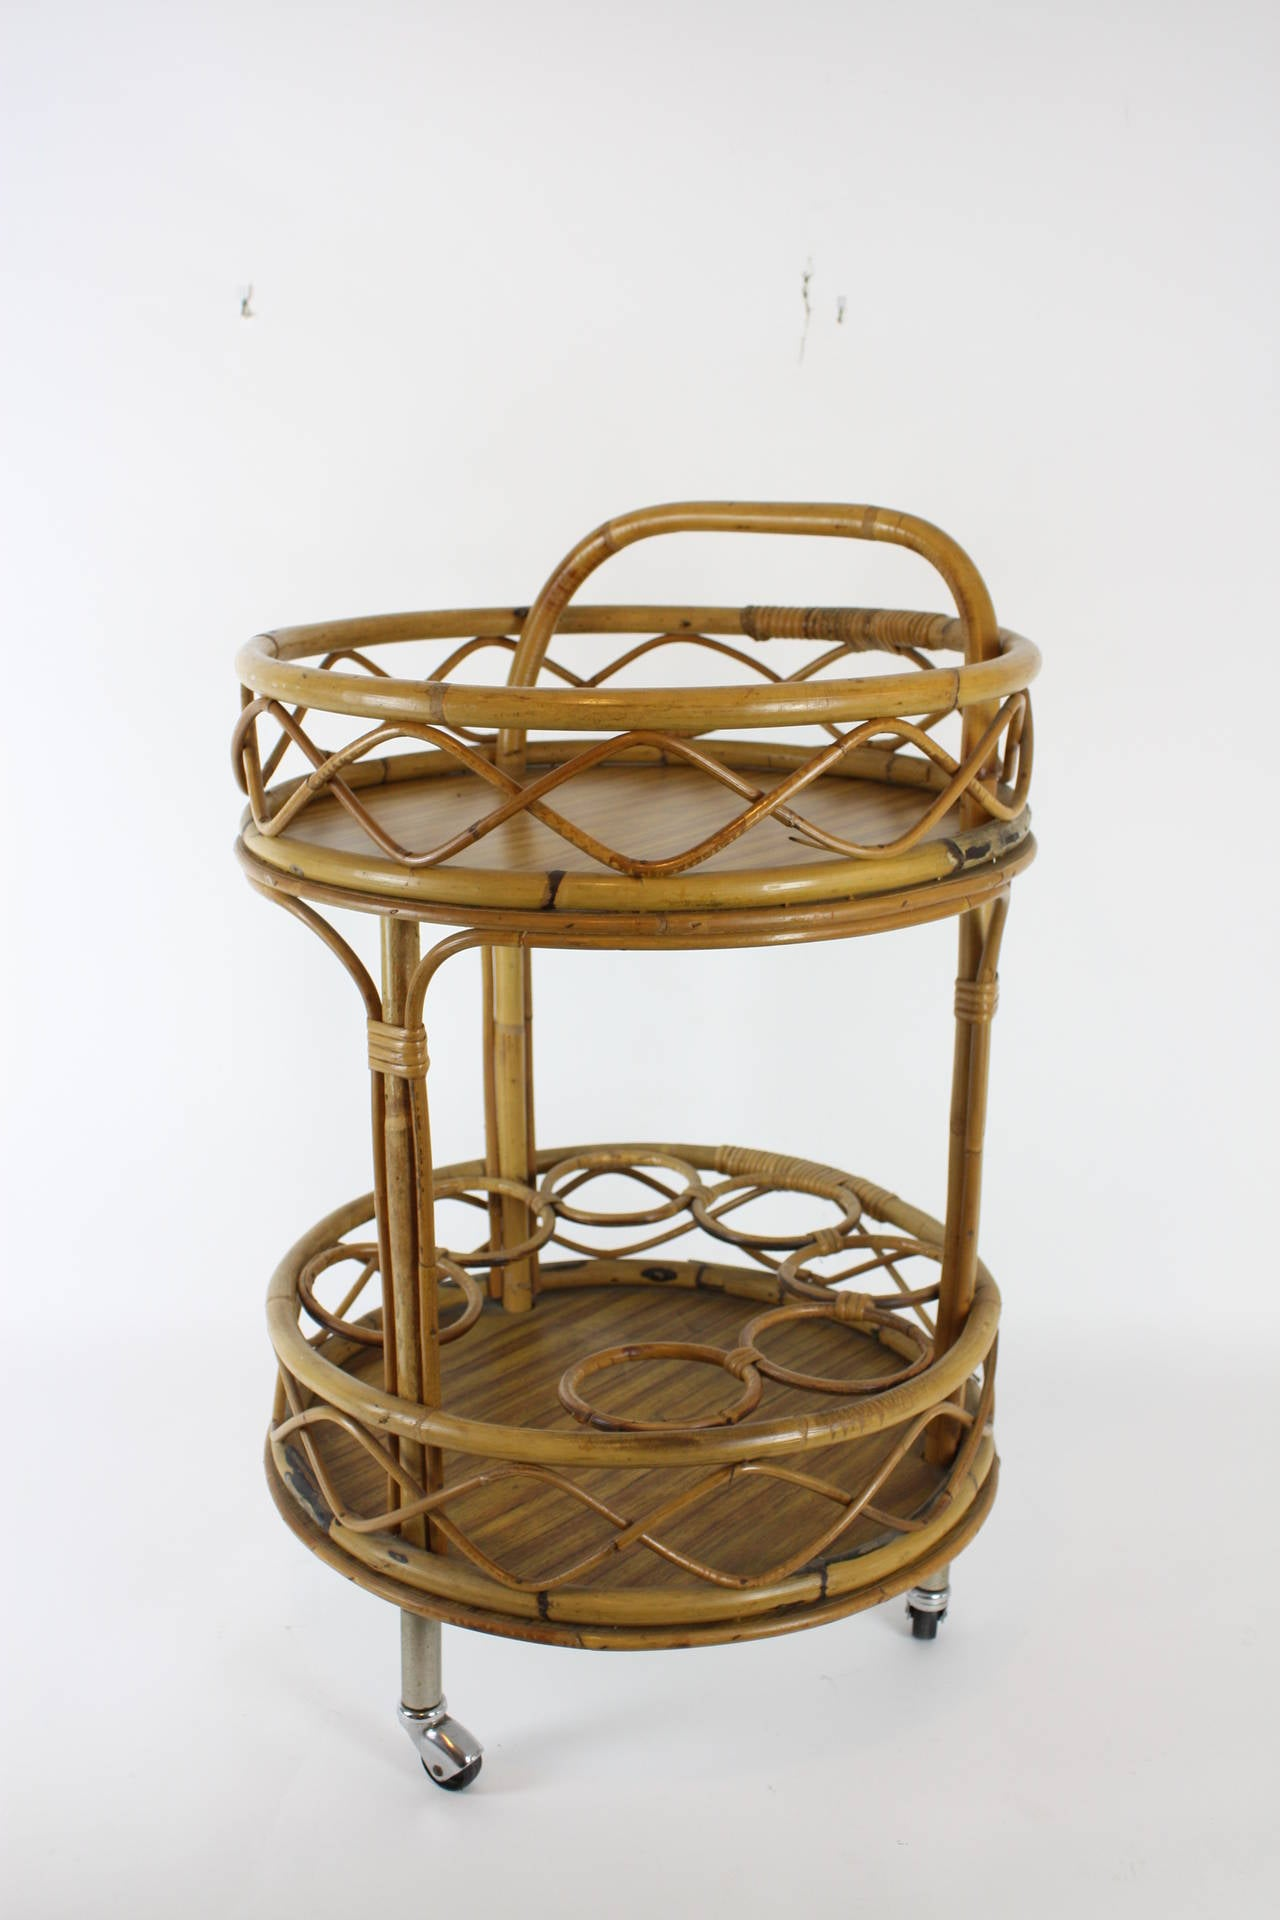 Spanish bar cart in Mediterranean style. It has two shelves; each shelve has a melamine base and the structure of the bar cart is made of bamboo and wicker.